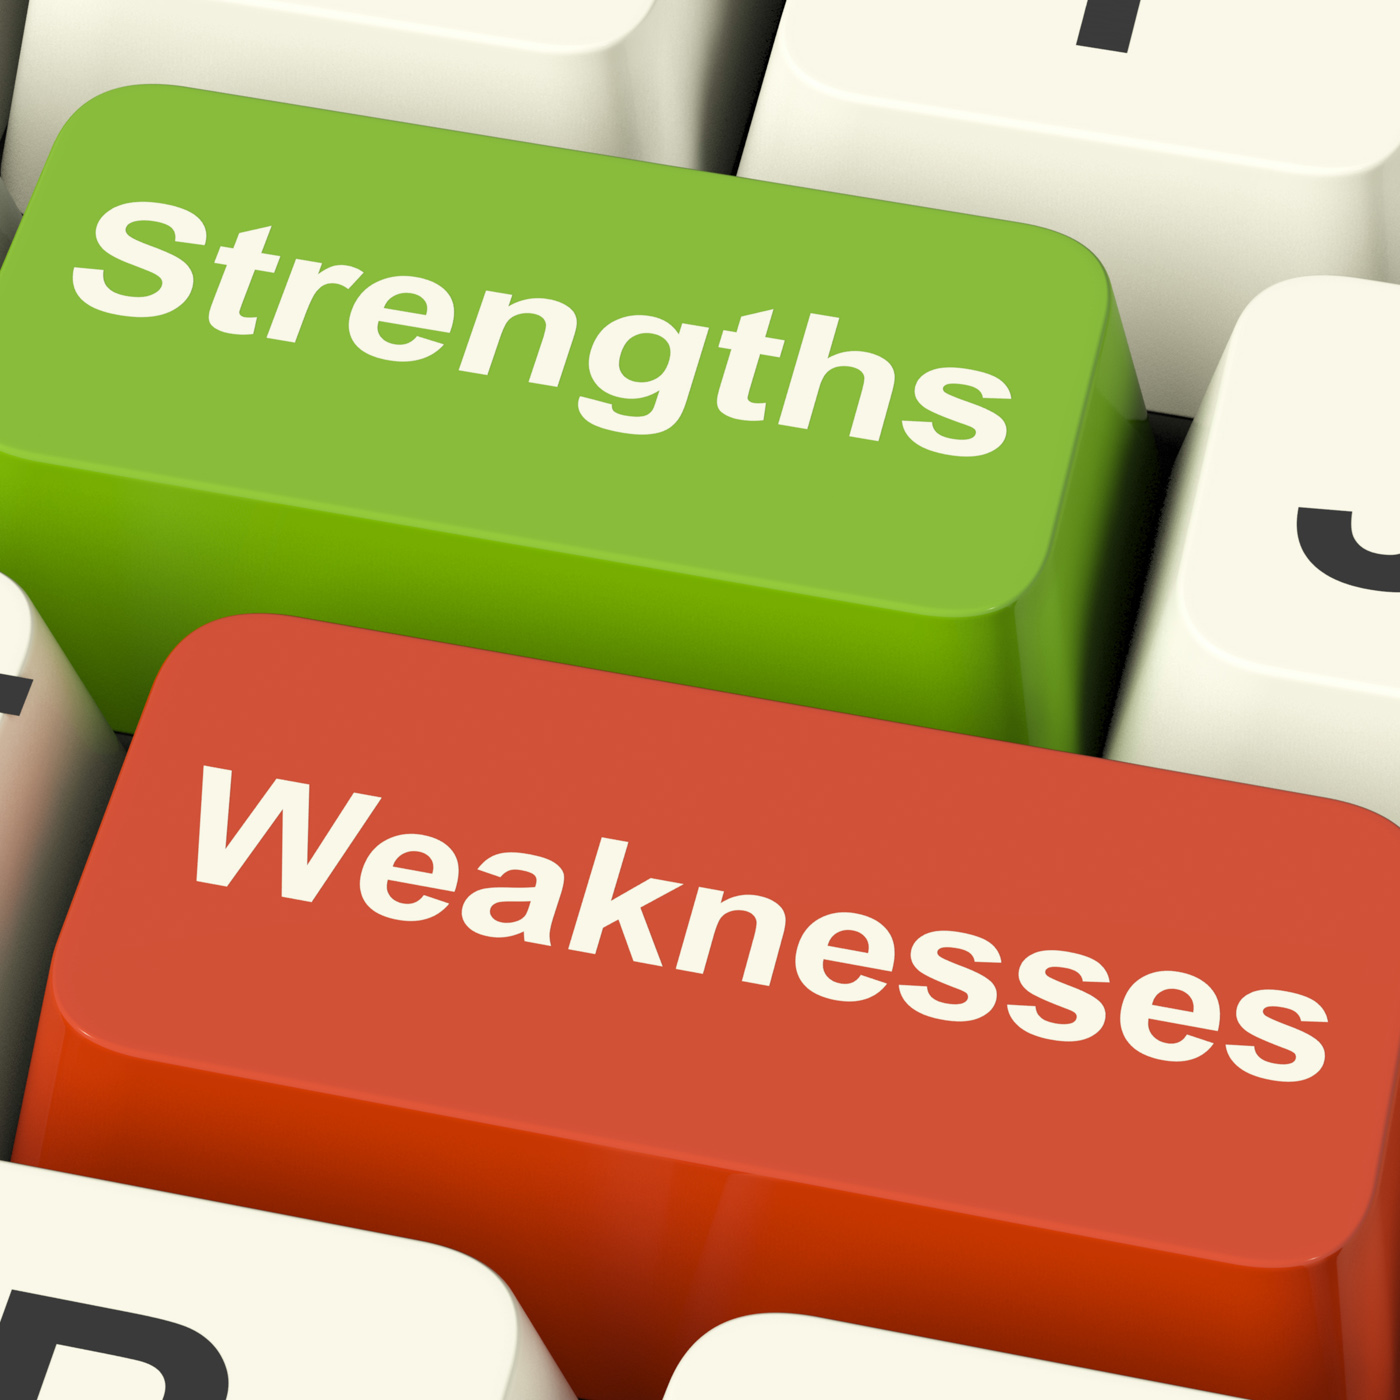 Strengths and weaknesses computer keys showing performance or analyzin photo